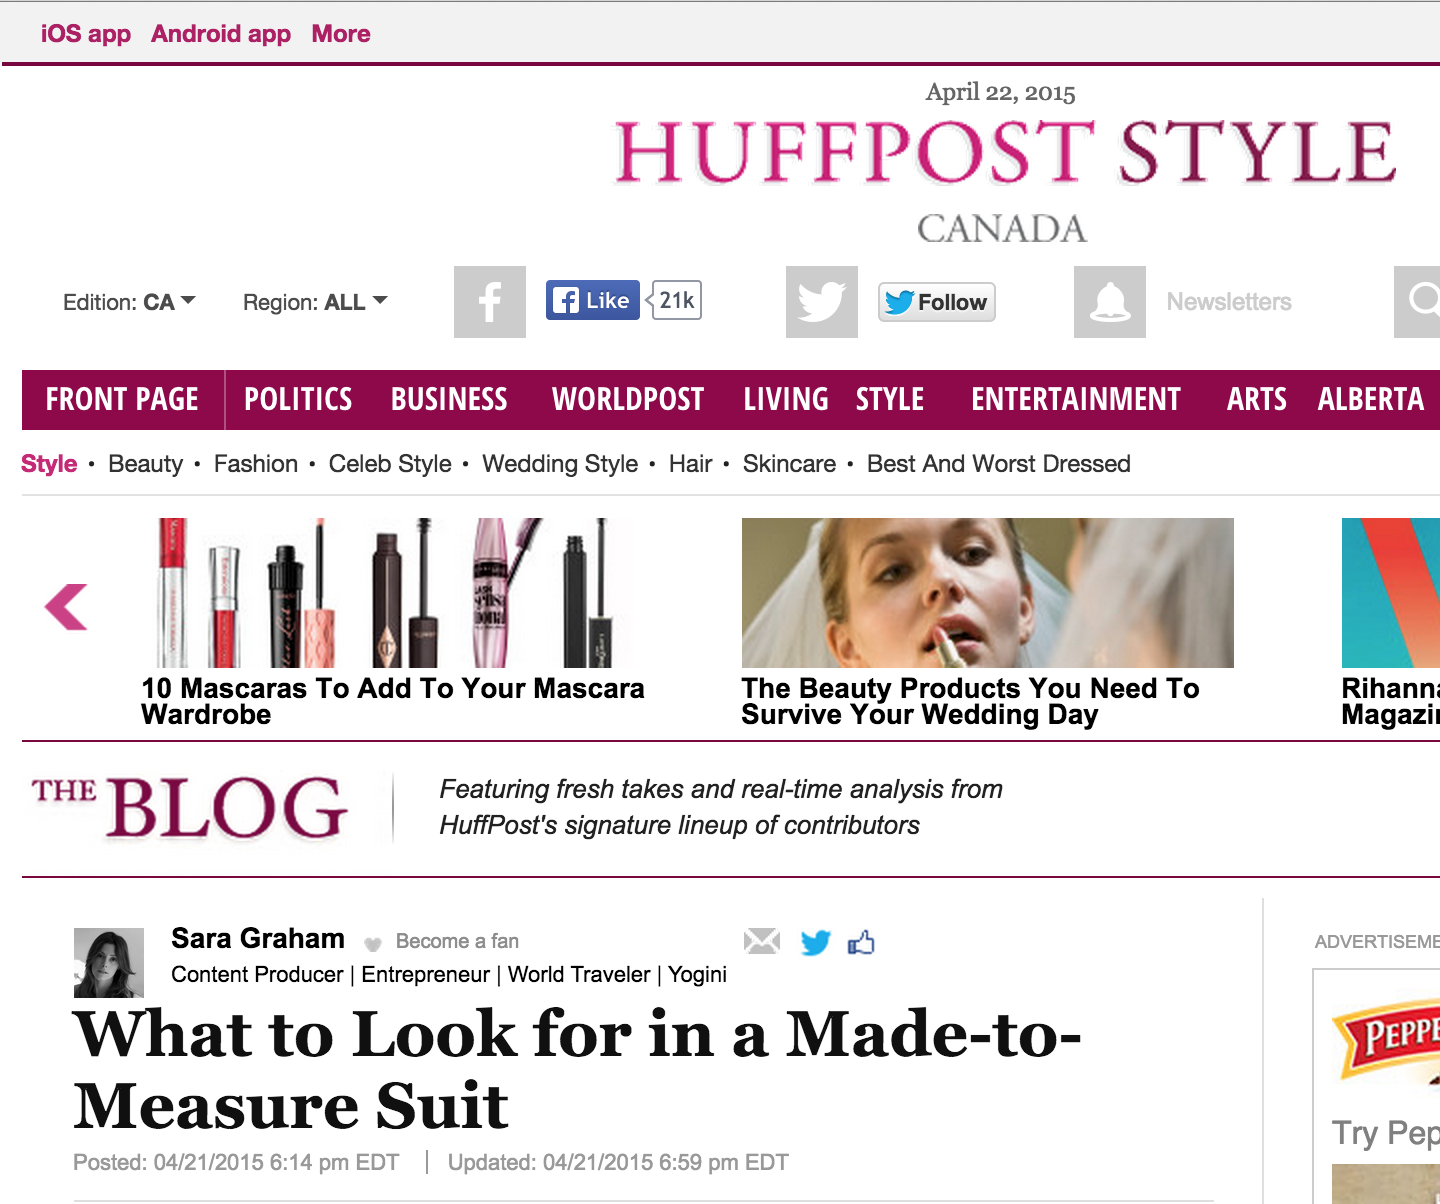 Huffington-Post-Konstantine-Made-to-measure-gotstyle